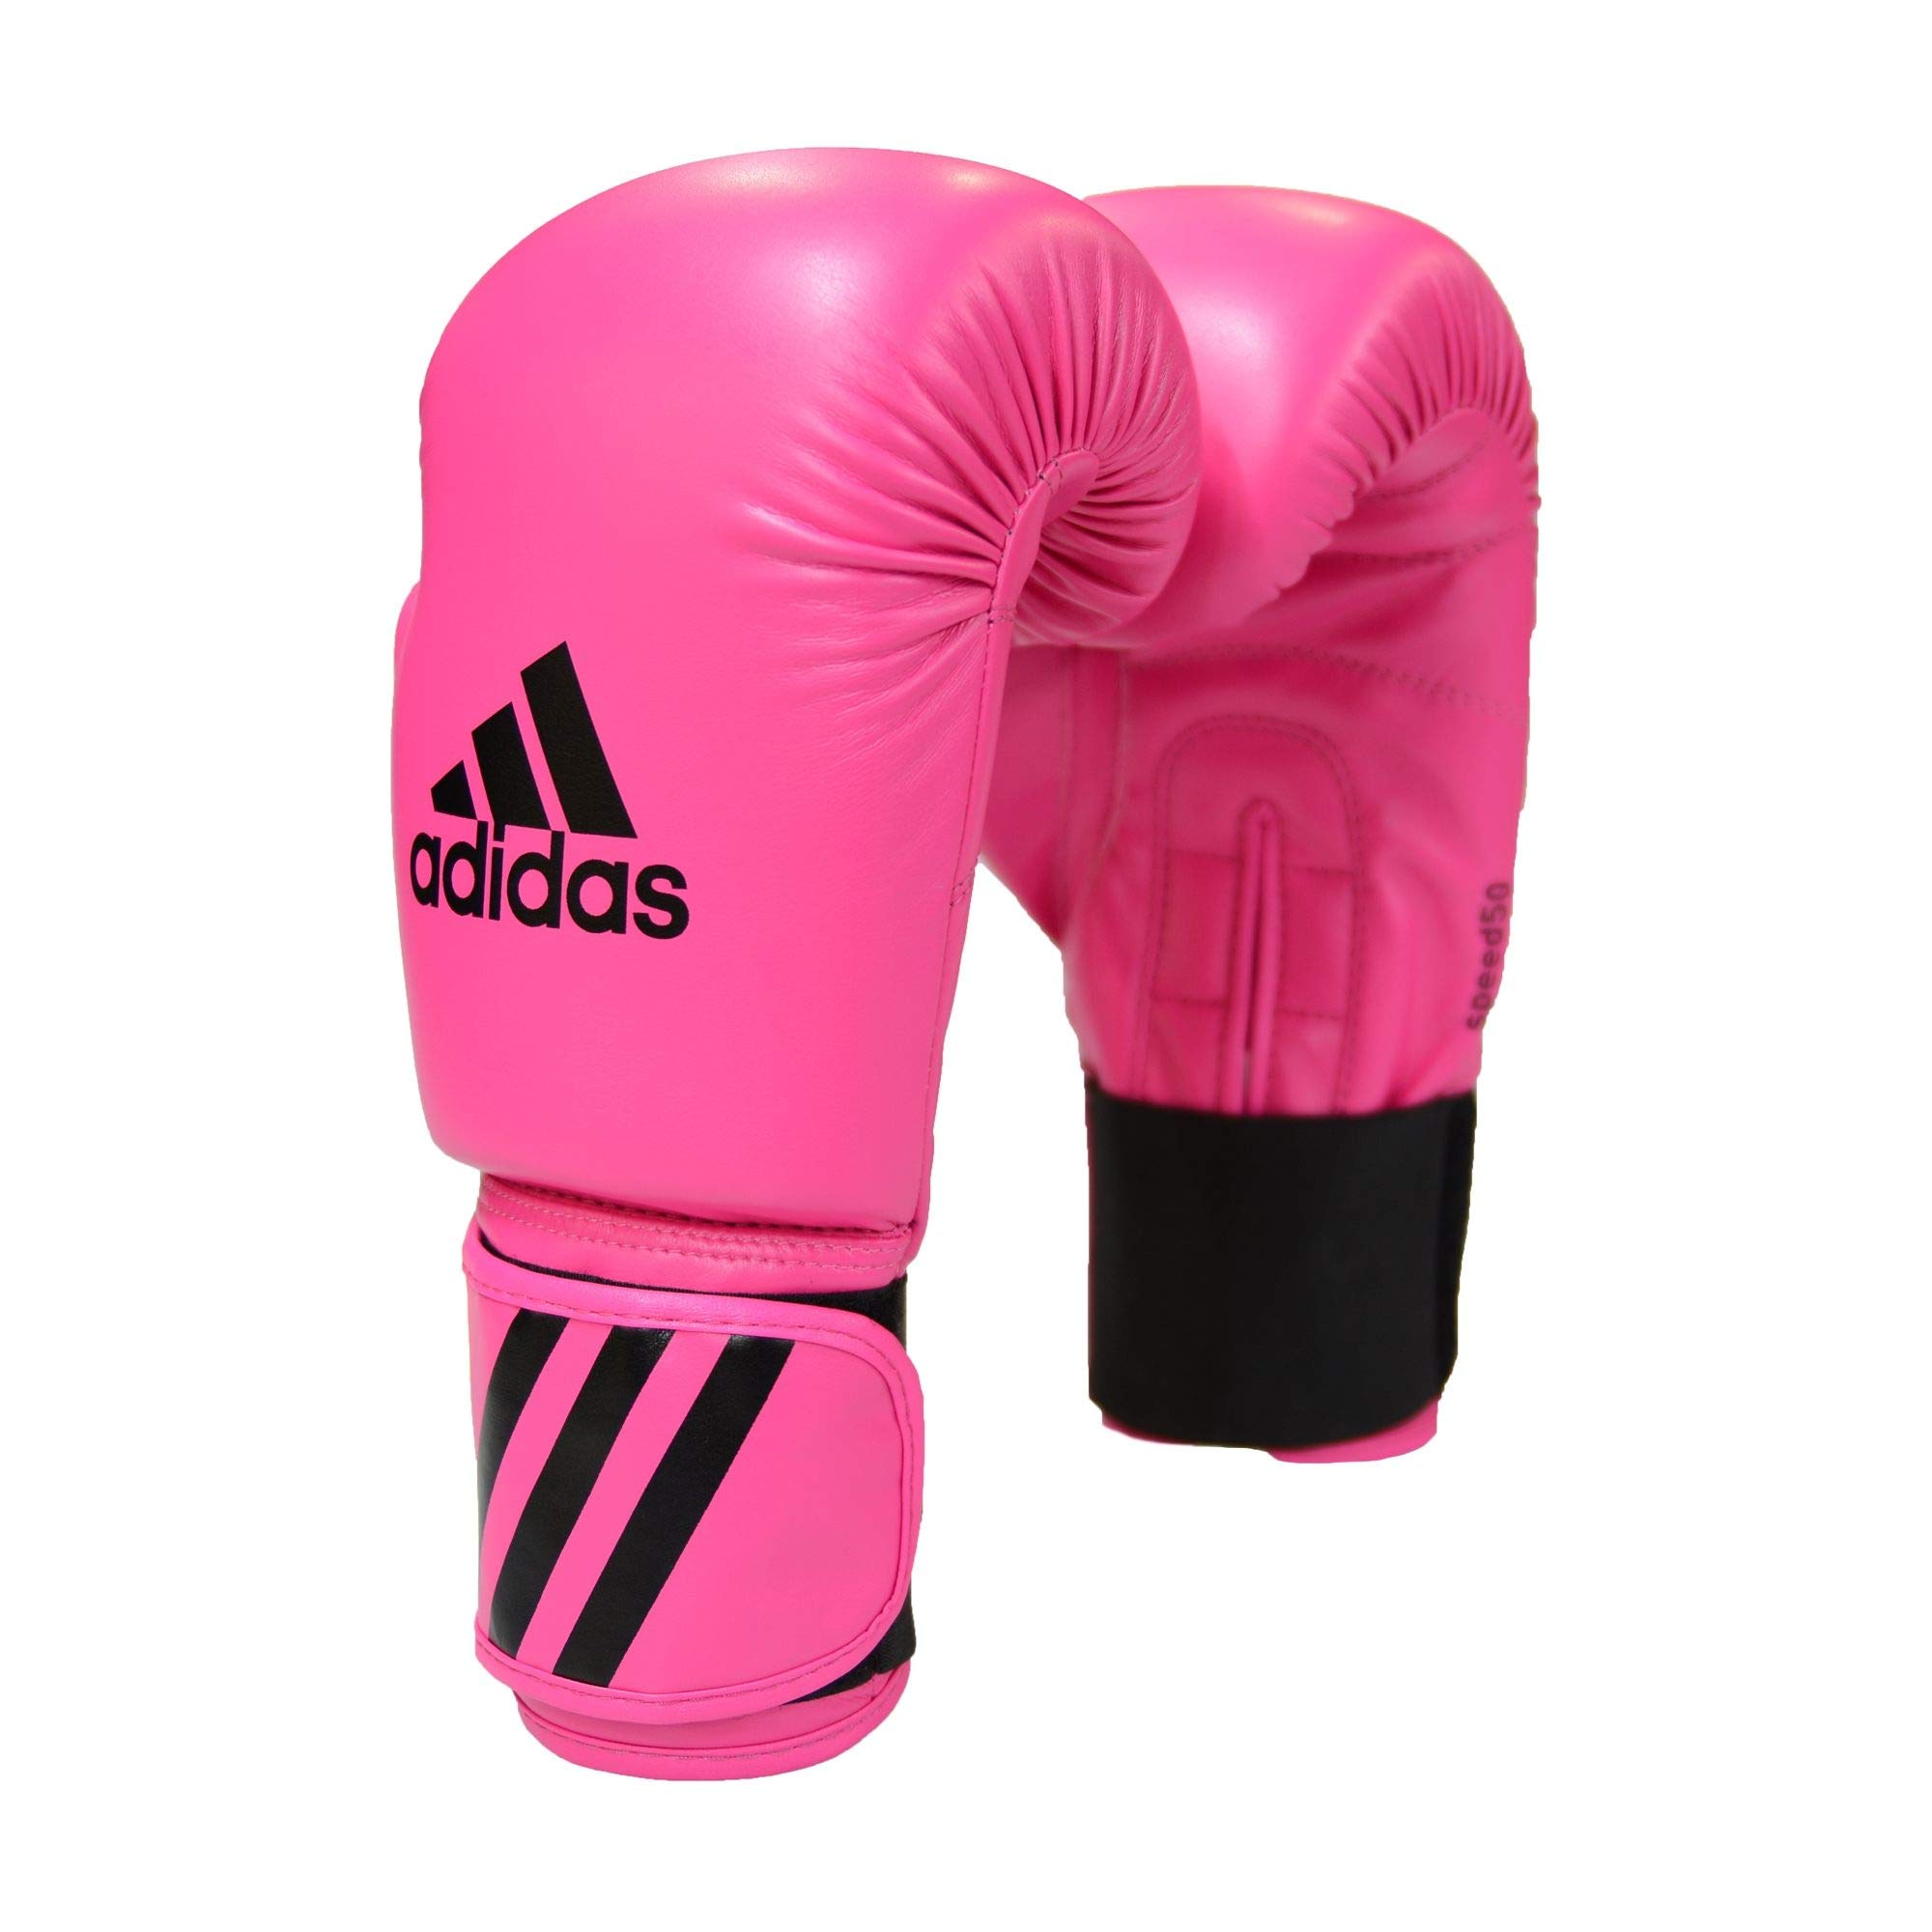 adidas Leather MMA Pink Gloves Sparring Set Focus Mitts Wraps /& Mouthguard